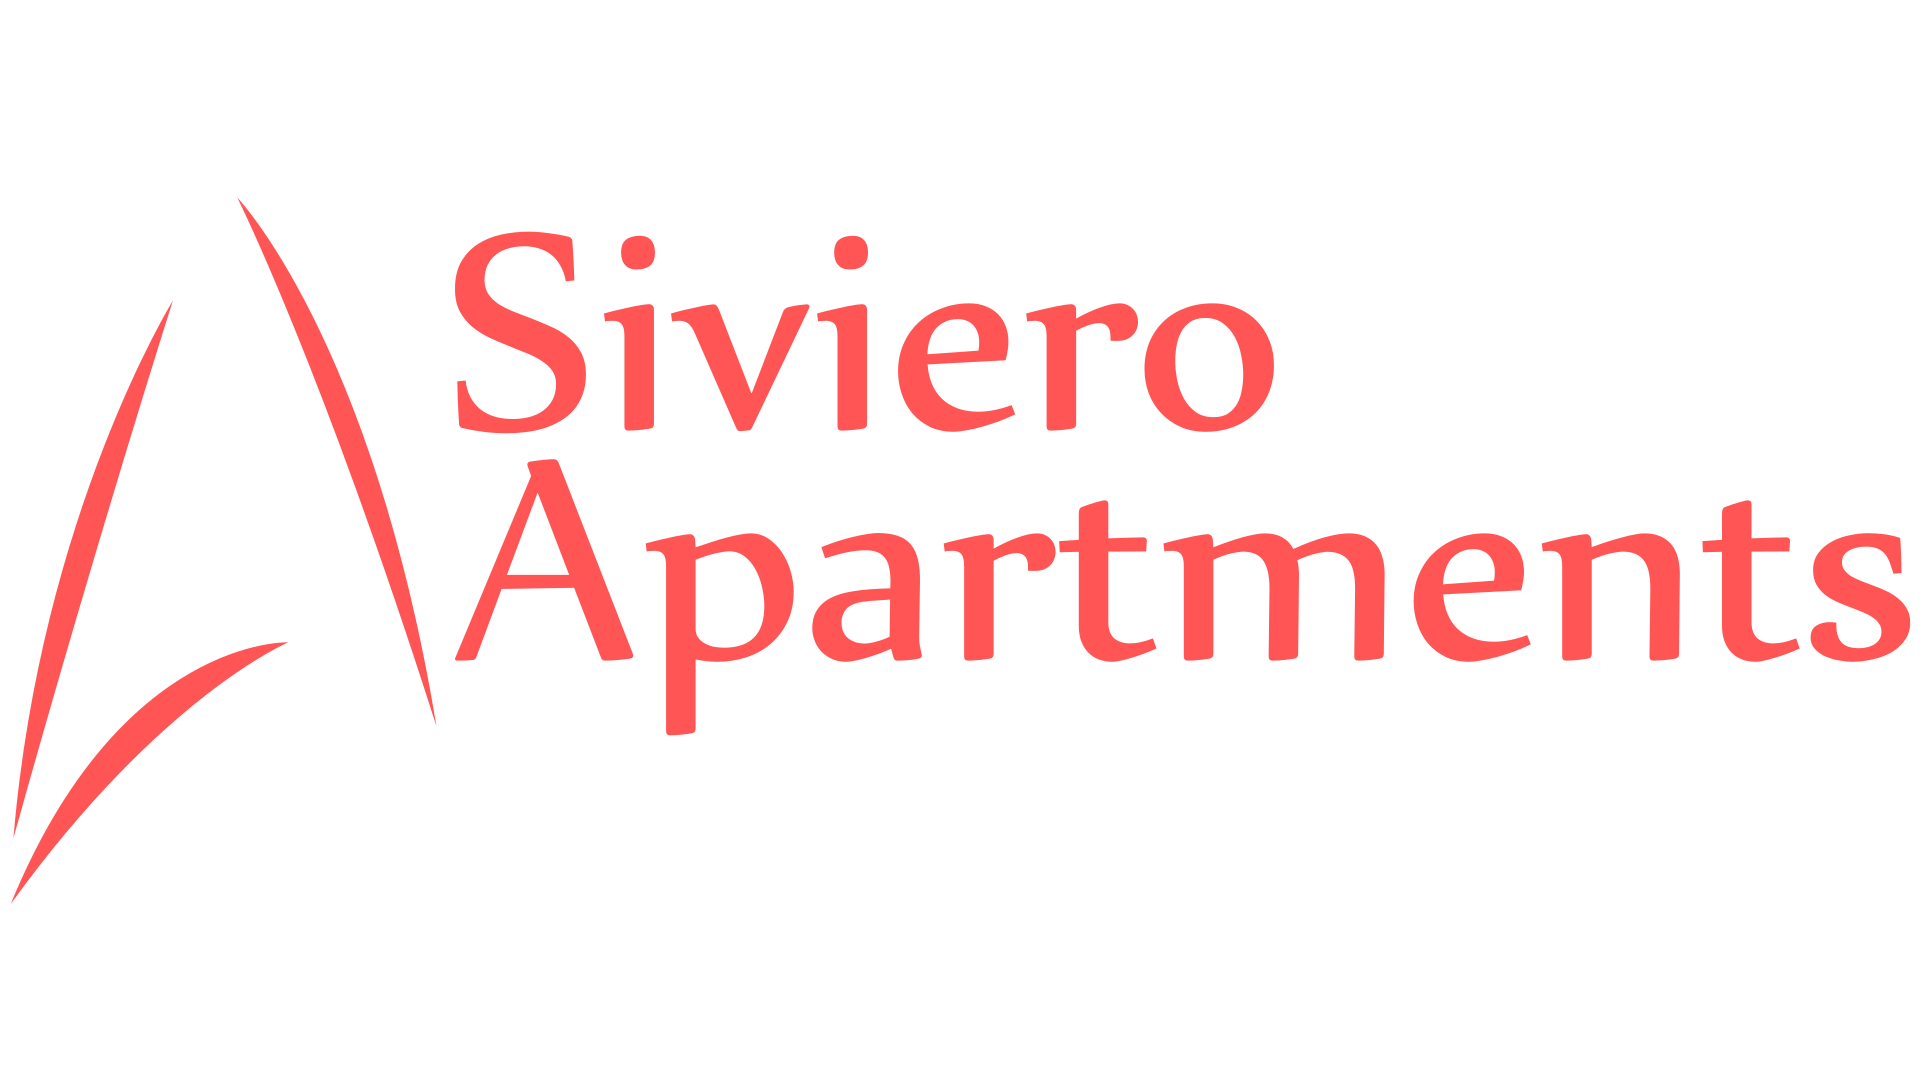 Siviero Apartments